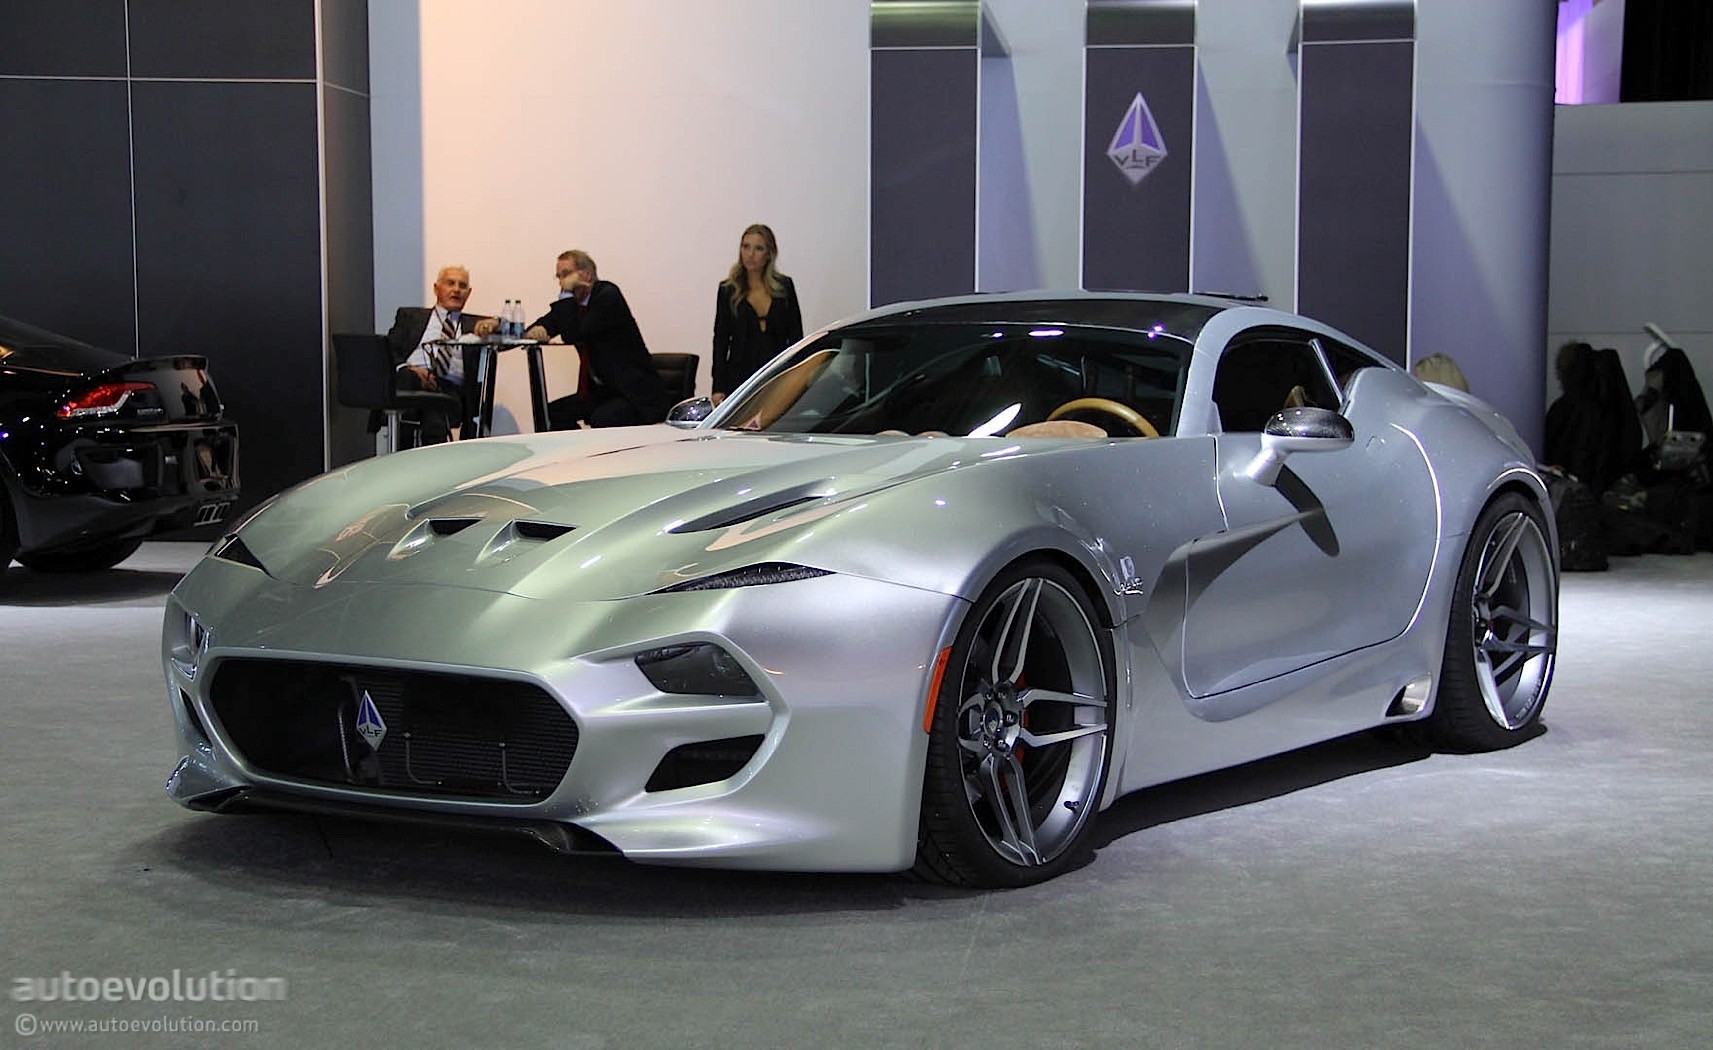 Pebble Beach Car Show >> Updated: Fisker's VLF Force 1 Arrives in Detroit, Doesn't Look like an Aston Martin - autoevolution